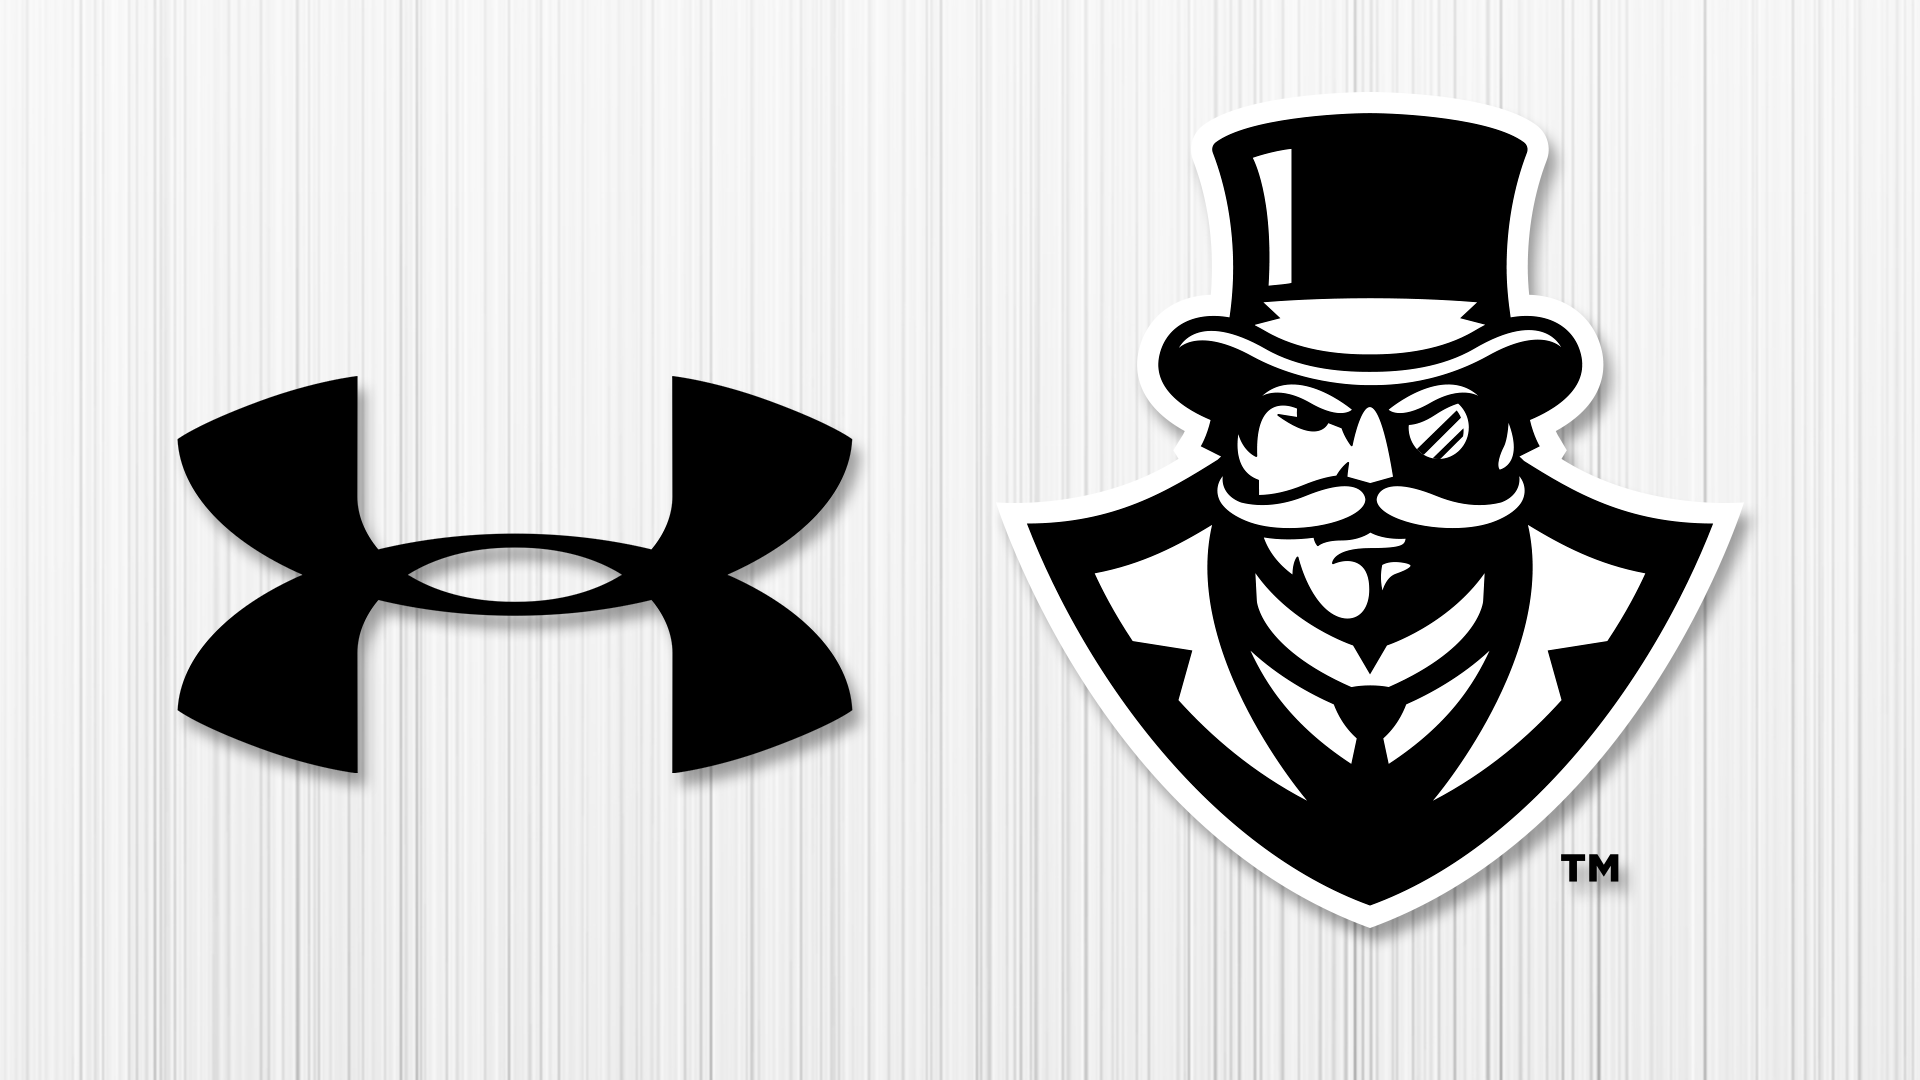 lowest price 5e046 c883d Austin Peay Athletics joins forces with Under Armour to outfit Governors  teams